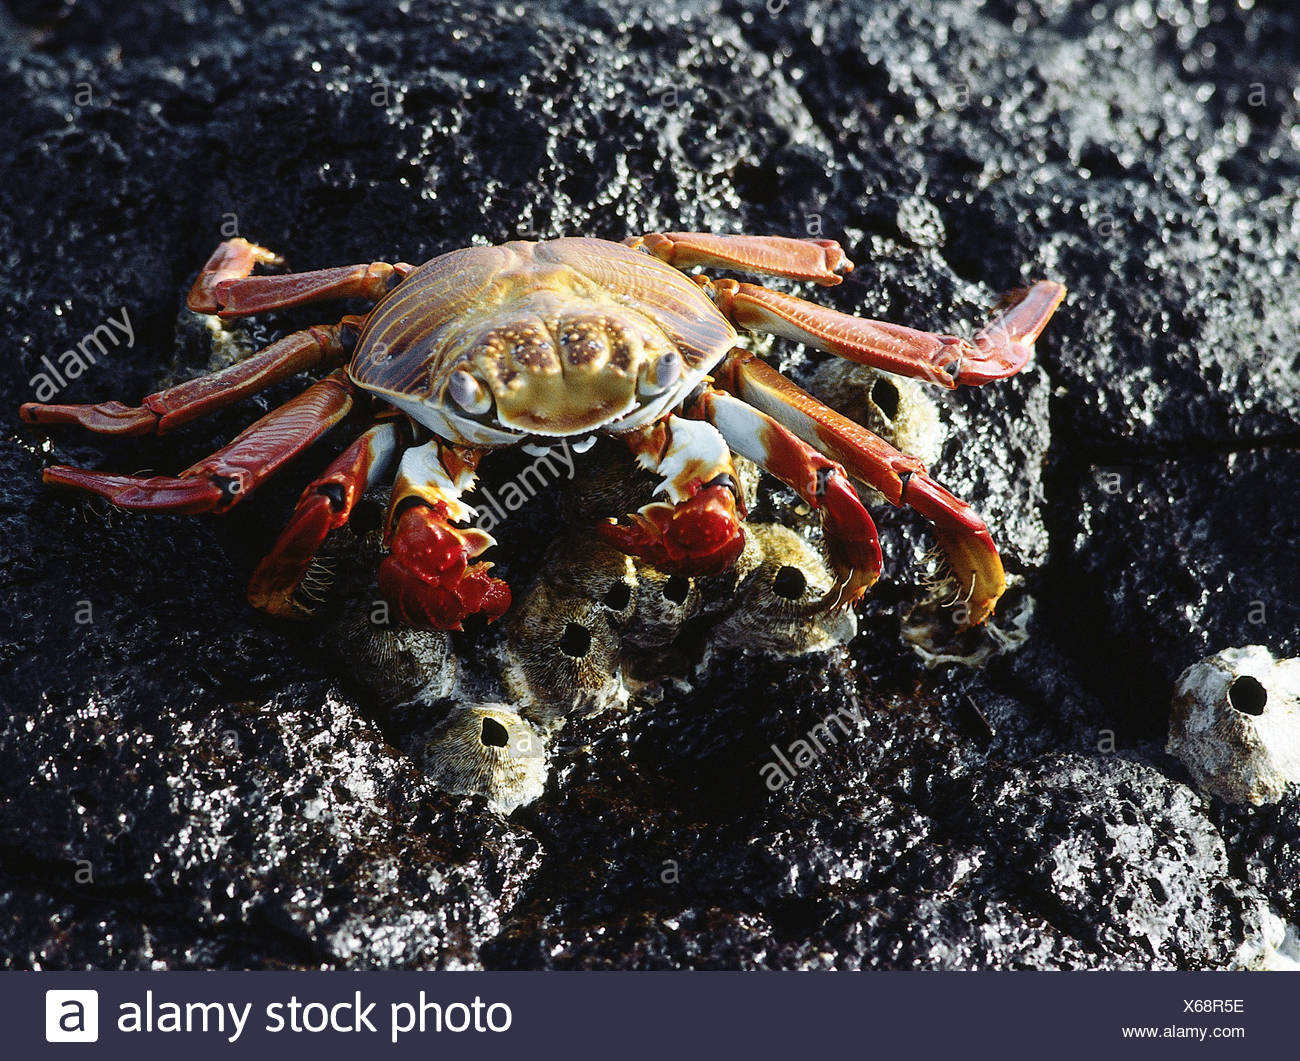 zoology / animals, shellfish / crustacean, red rock crab, (Grapsus grapsus), sitting on rock, close-up, distribution: Mosquera a - Stock Image